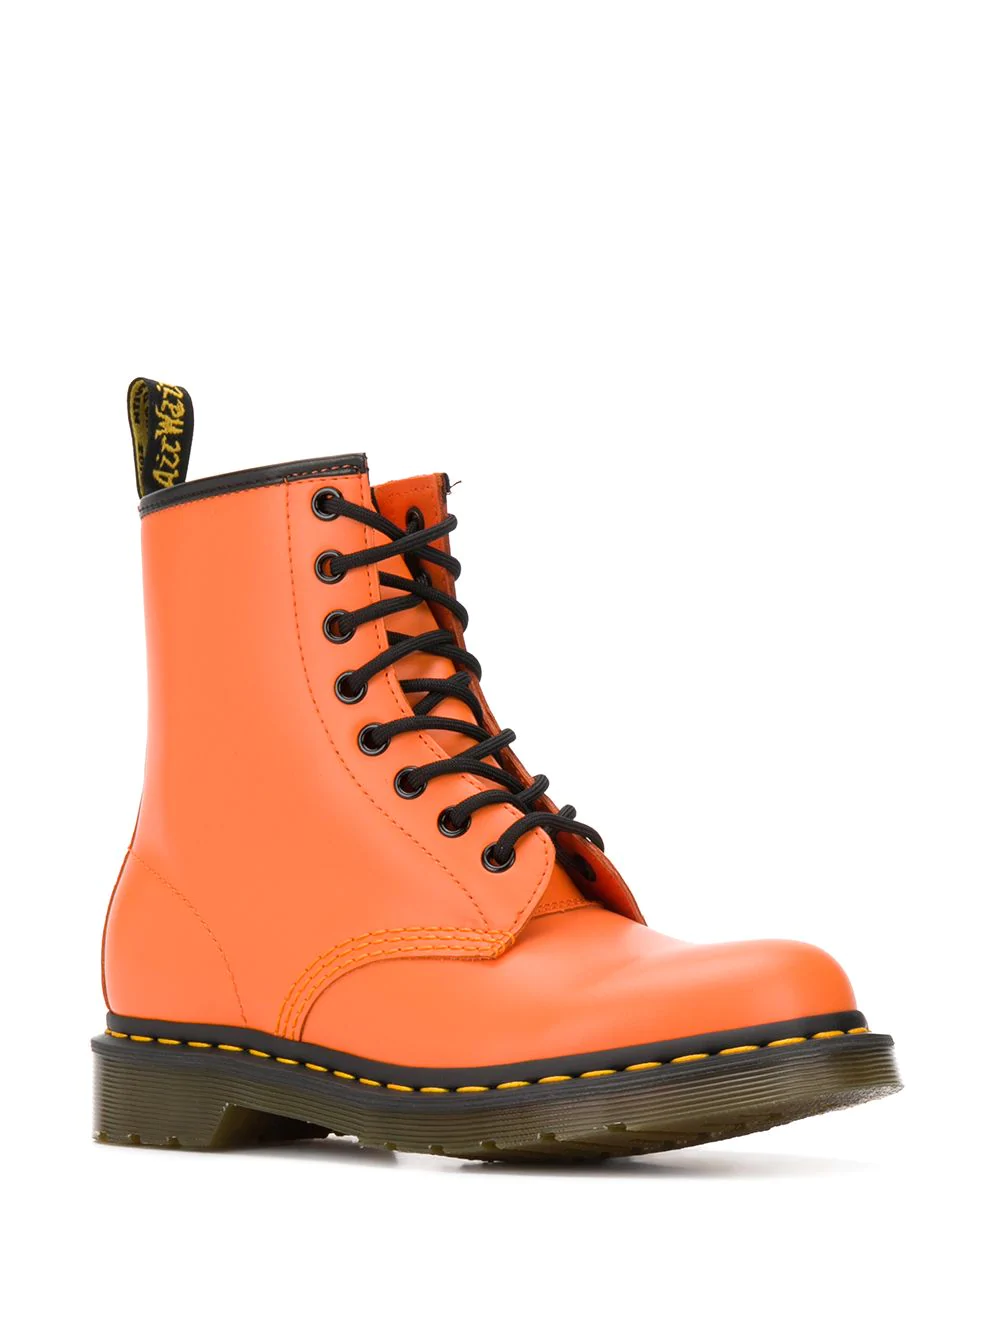 Dr. Martens 1460W Orange Smooth